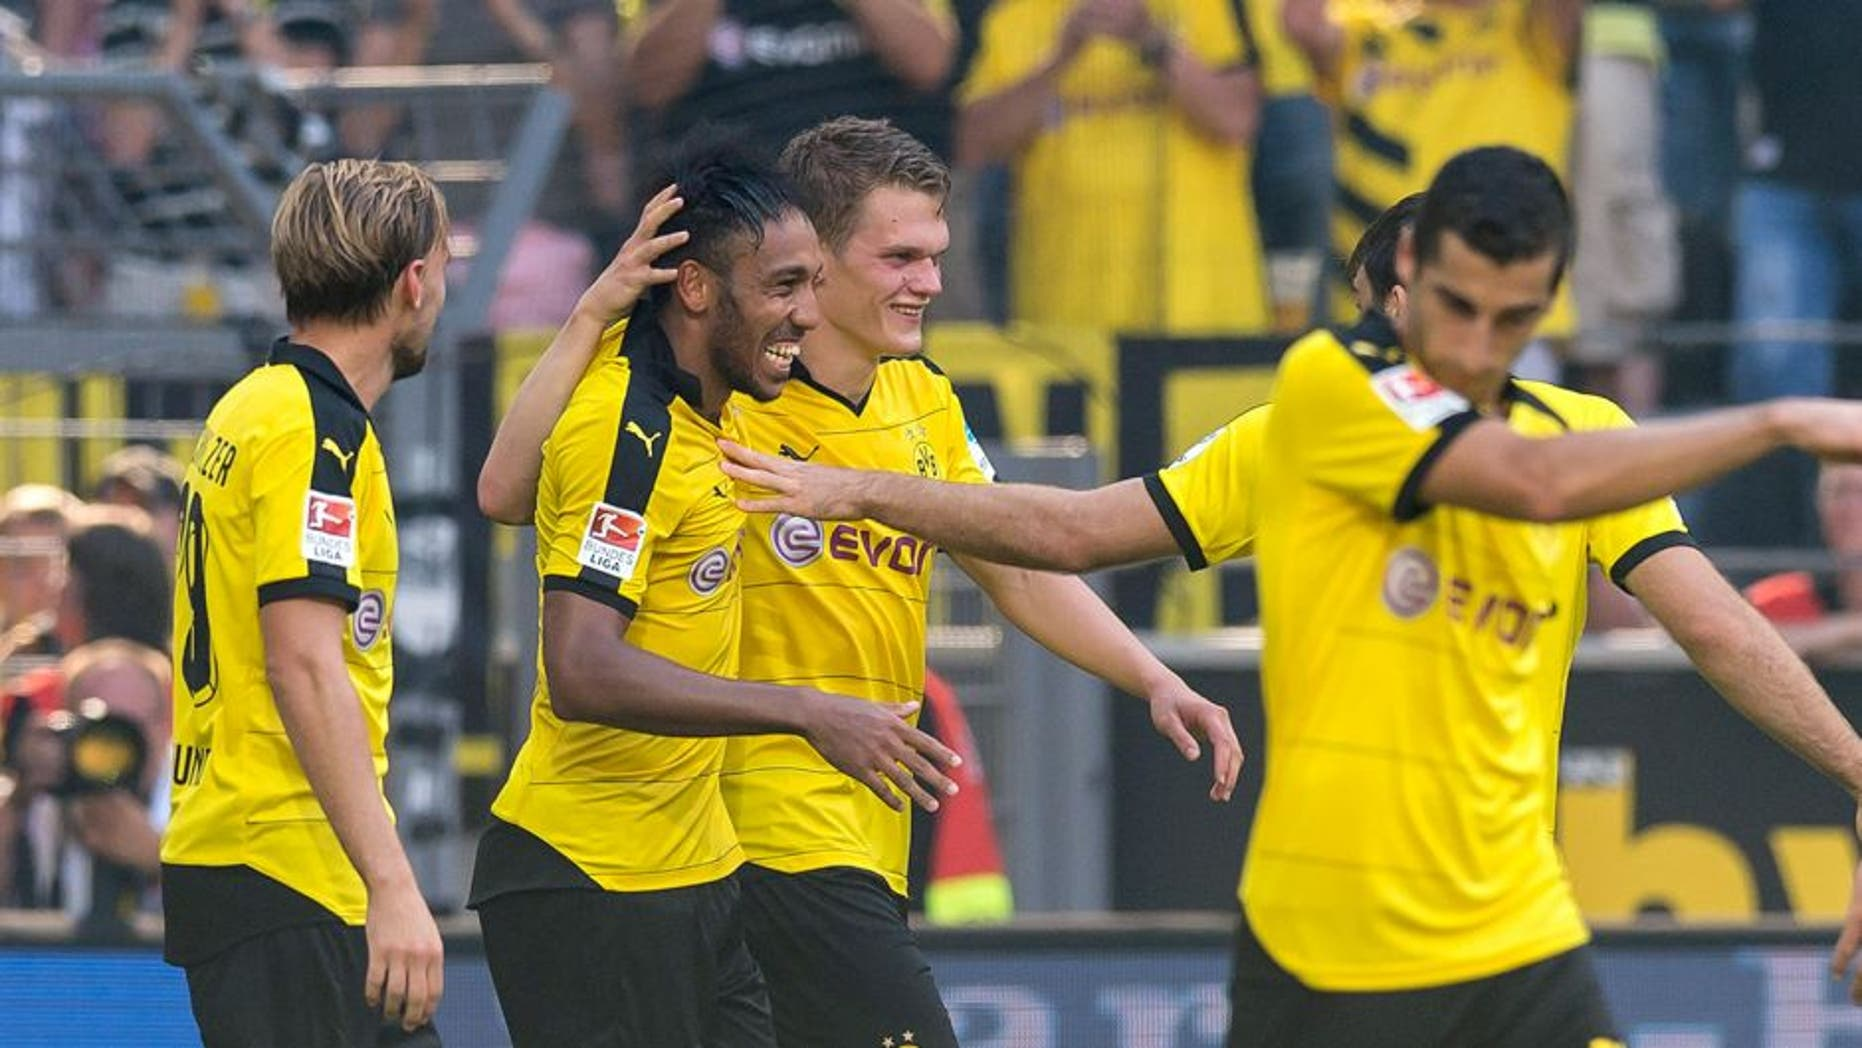 DORTMUND, GERMANY - AUGUST 30: Pierre-Emerick Aubameyang of Borussia Dortmund celebrates scoring the goal to the 2:0 together with his team mates Matthias Ginter, Marcel Schmelzer and Henrikh Mkhitaryan during the Bundesliga match between Borussia Dortmund and Hertha BSC at Signal Iduna Park on August 30, 2015 in Dortmund, Germany. (Photo by Alexandre Simoes/Borussia Dortmund/Getty Images)